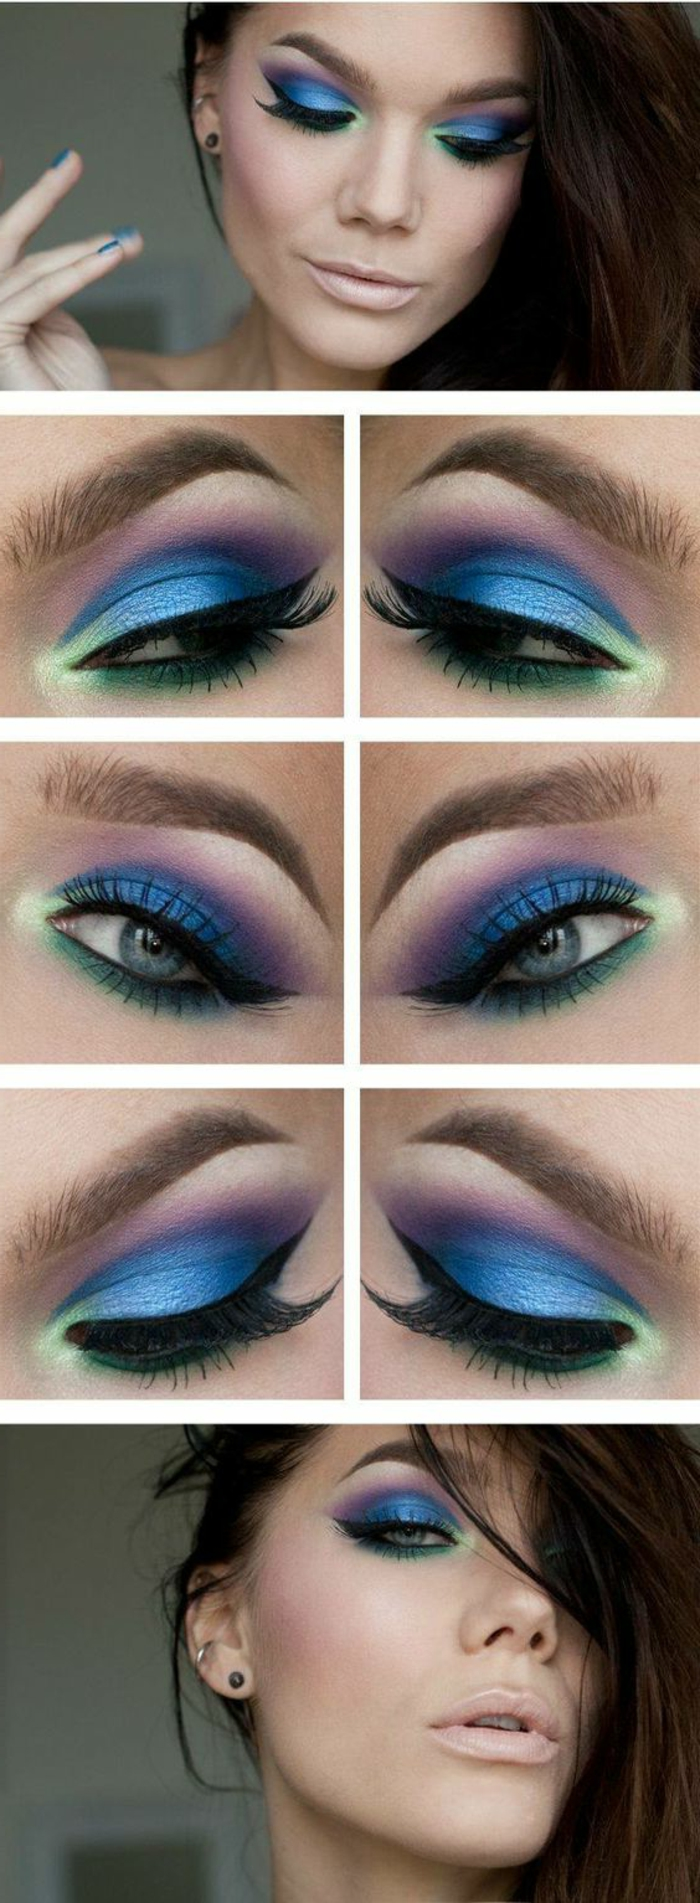 Tuto maquillage yeux vert fashion designs - Tuto maquillage yeux ...